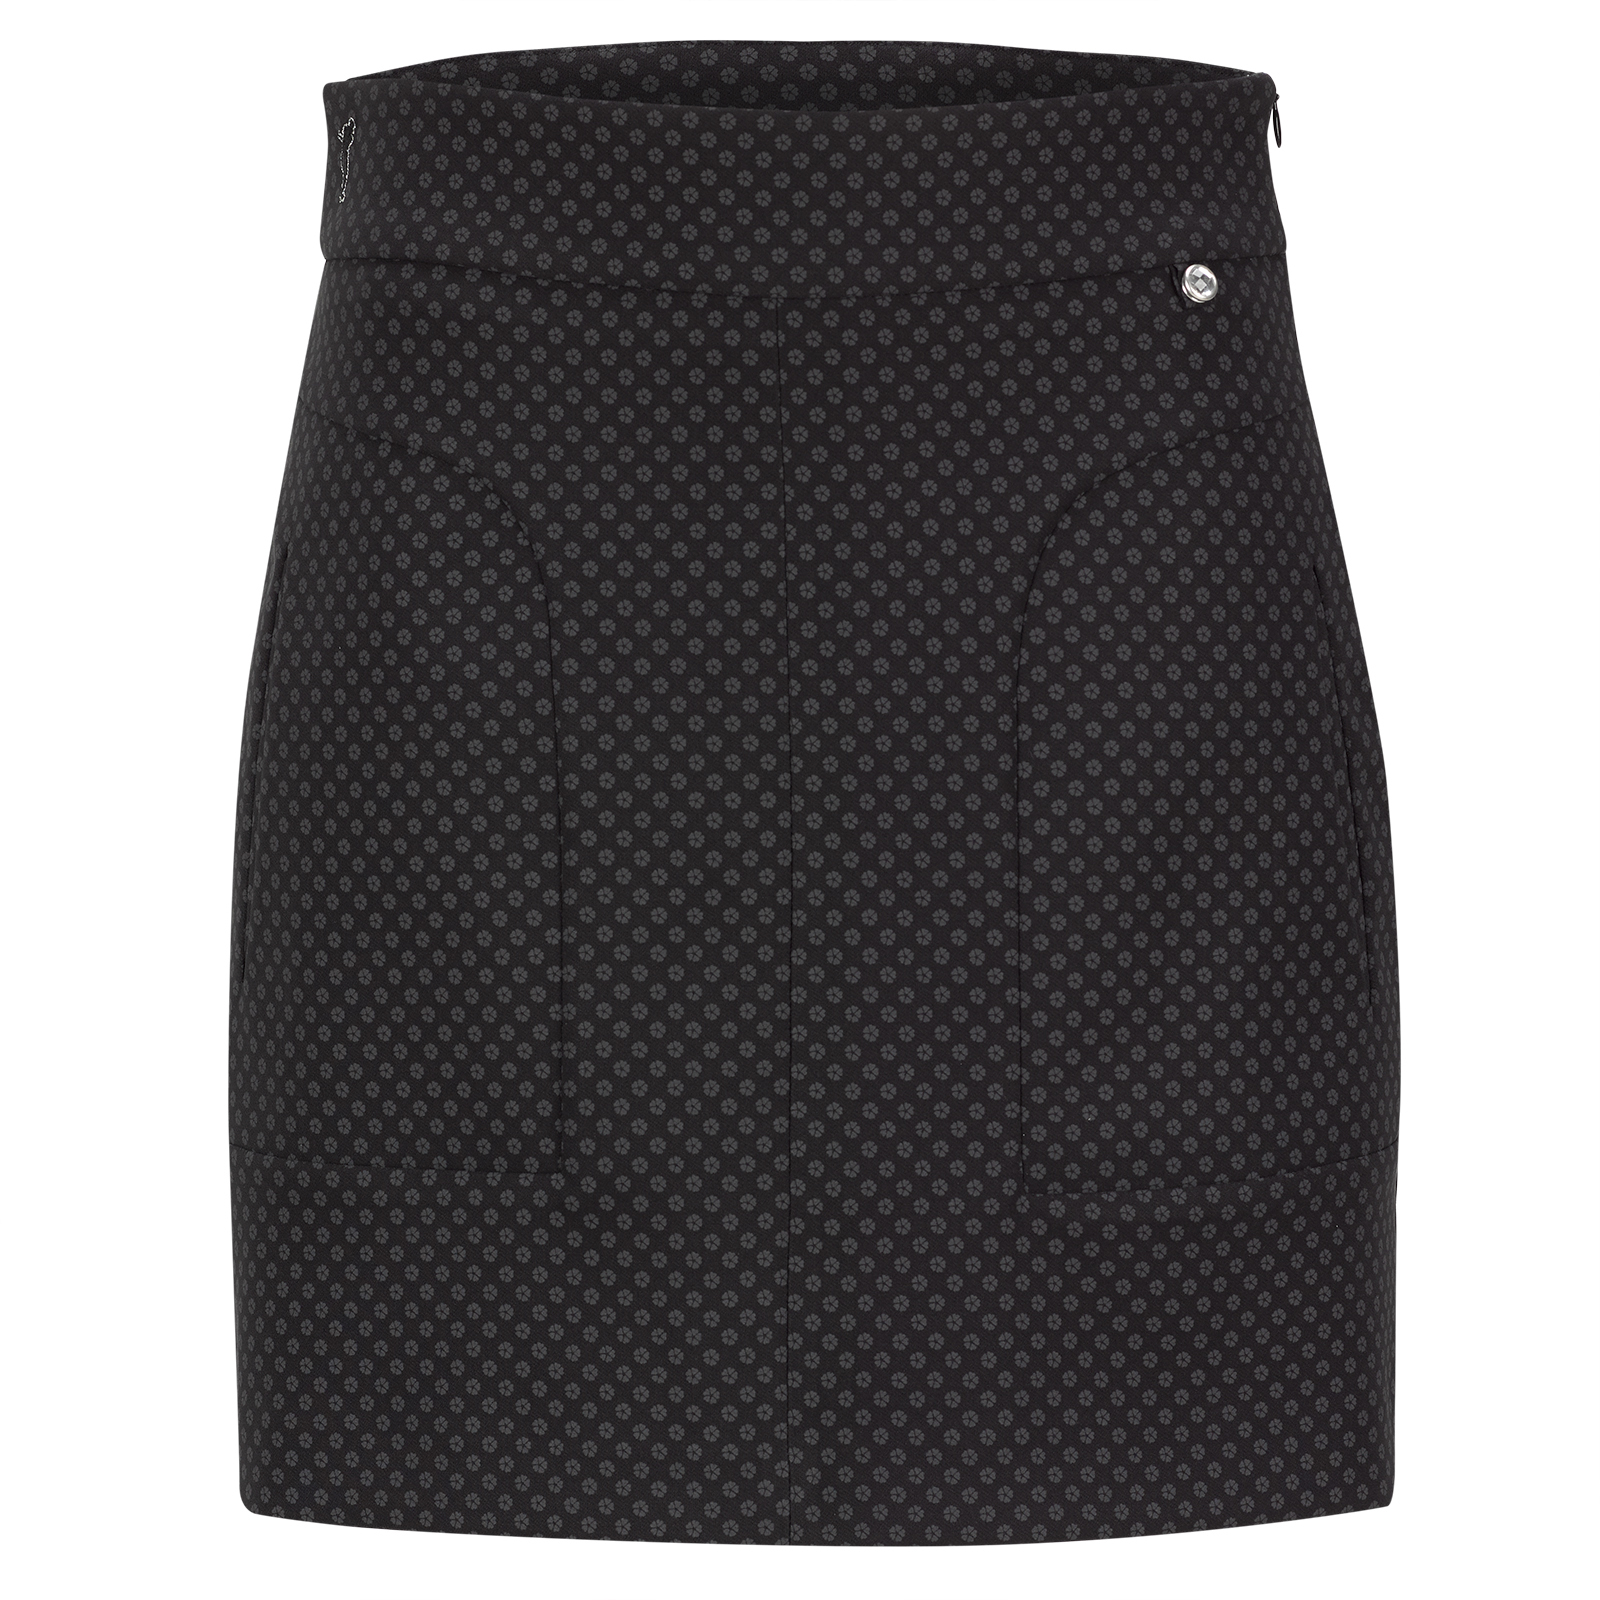 Modischer Damen Print-Golfskort aus 4-Way-Stretch in kurzer Passform